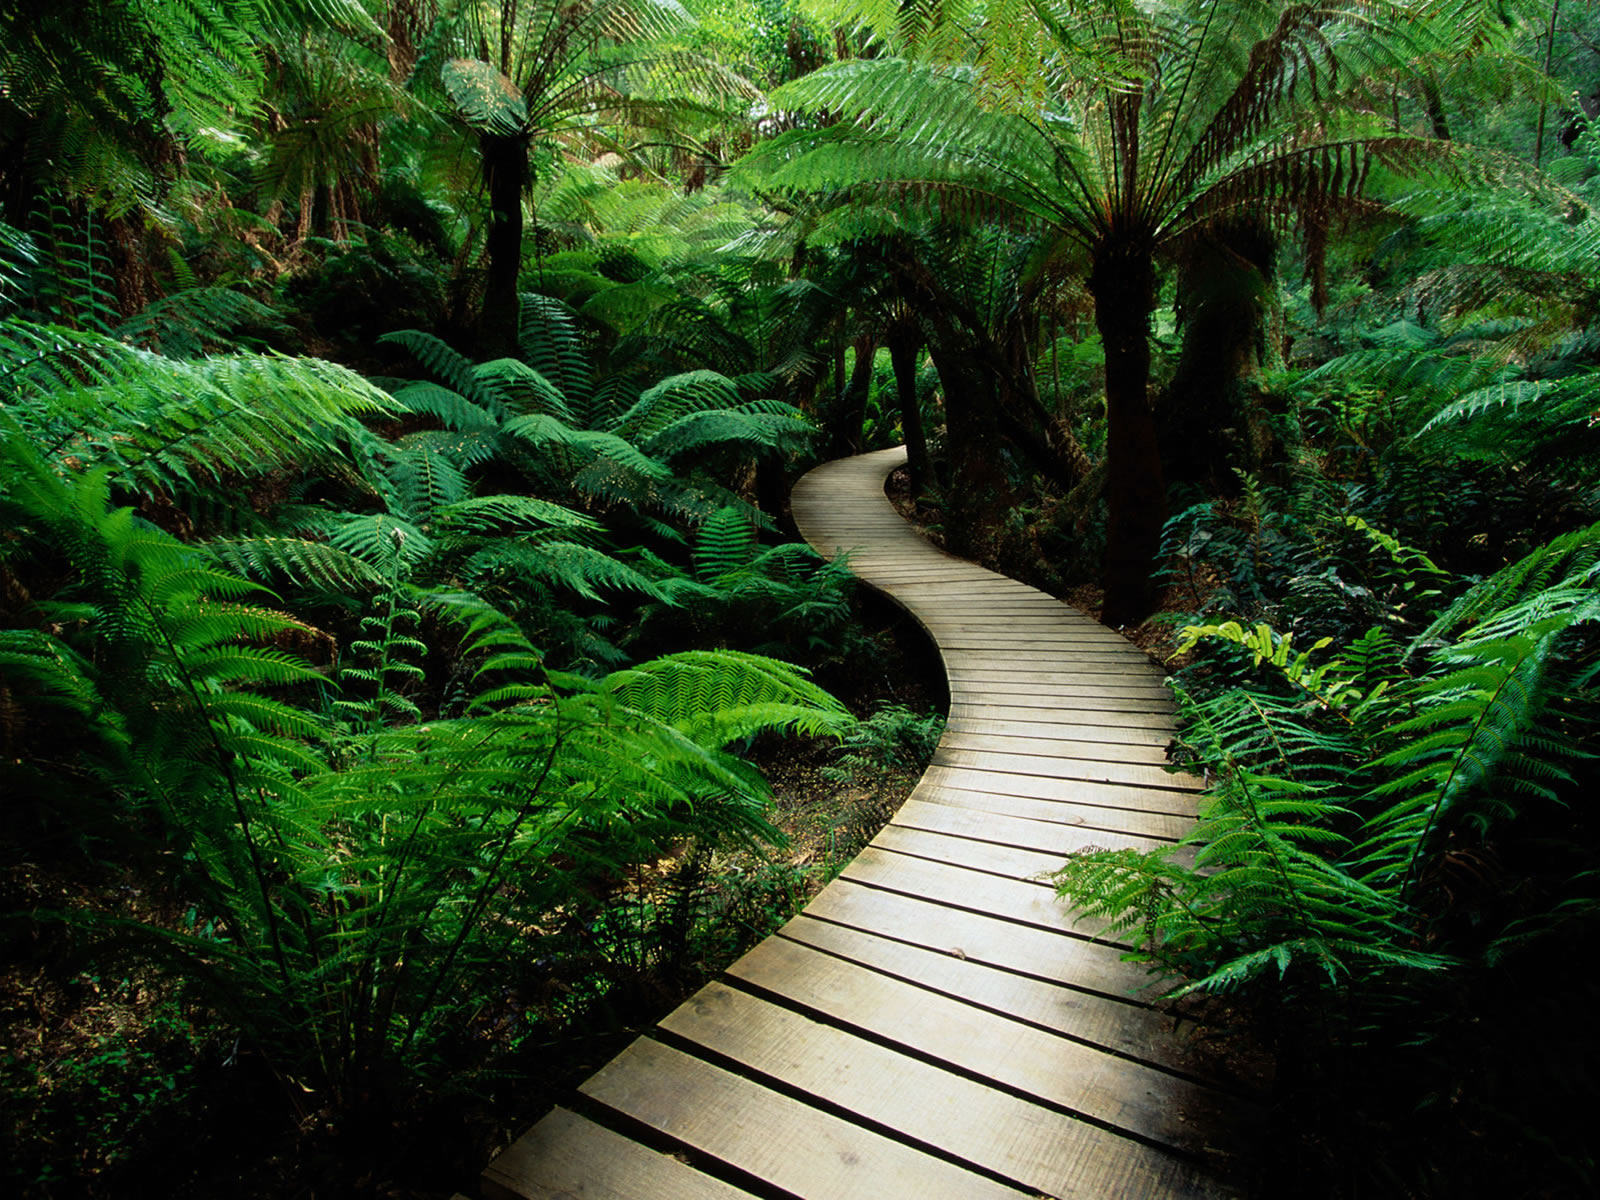 http://4.bp.blogspot.com/-3PrKnKOv5b8/TzLHaK9HH2I/AAAAAAAAAHQ/1LrHNsVkvTI/s1600/3d-nature-wallpaper-3D-Jungle-Wallpapers%20(3).jpg